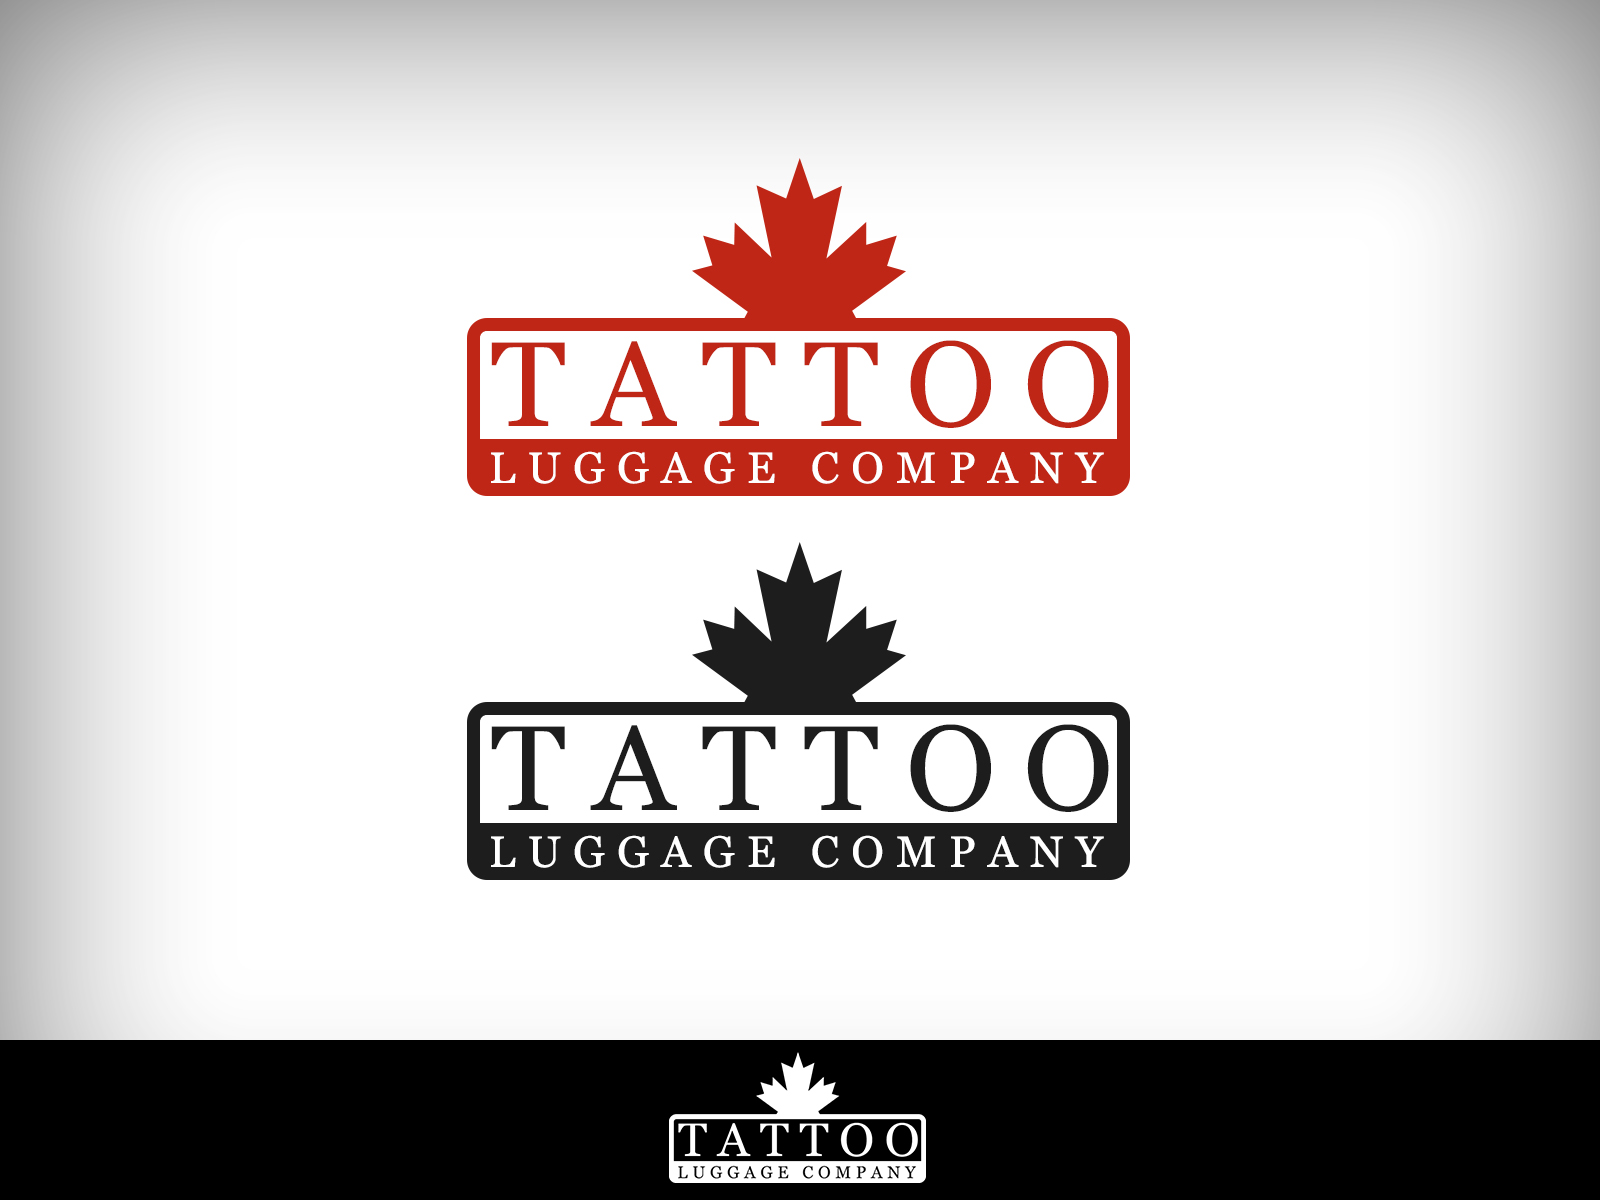 Logo Design by Virgilio Pineda III - Entry No. 89 in the Logo Design Contest Artistic Logo Design for Tattoo Luggage Company.